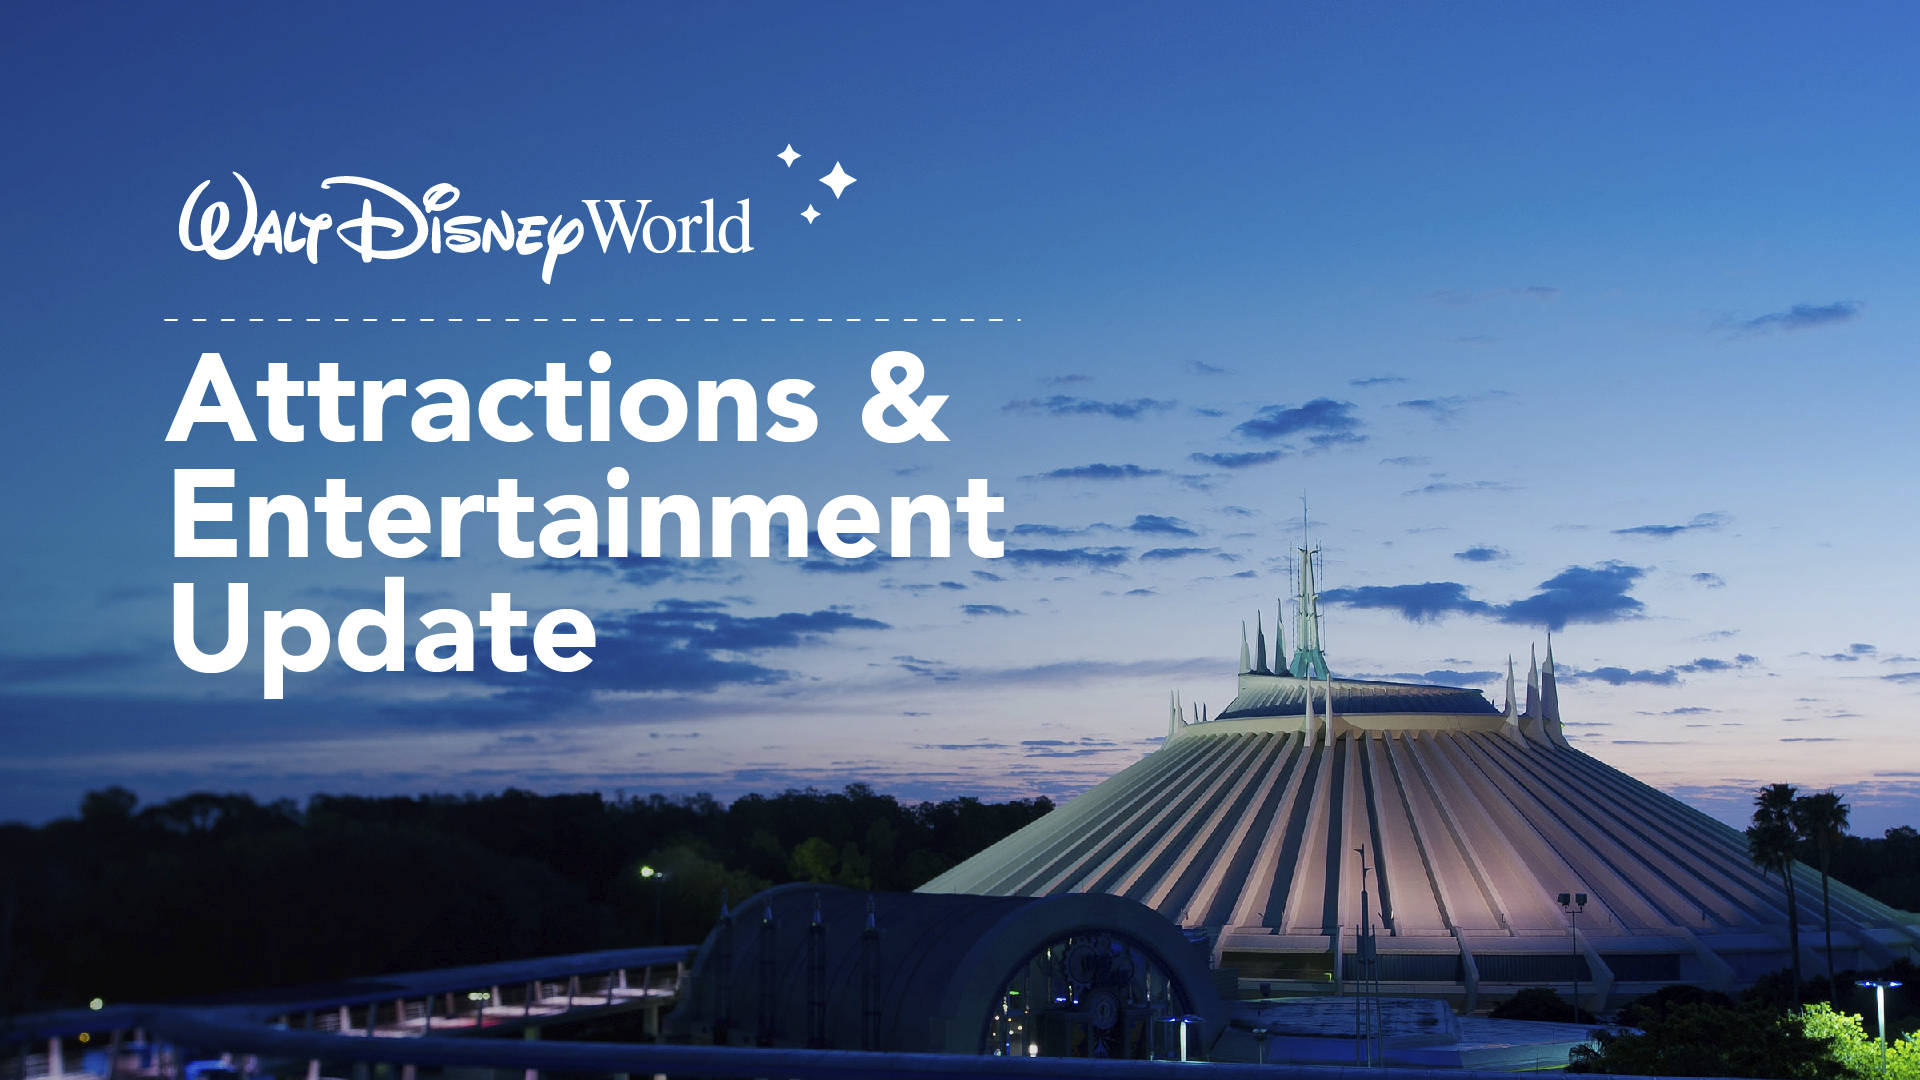 Attractions and Entertainment Details for Phased Reopening at the Walt Disney World Theme Parks